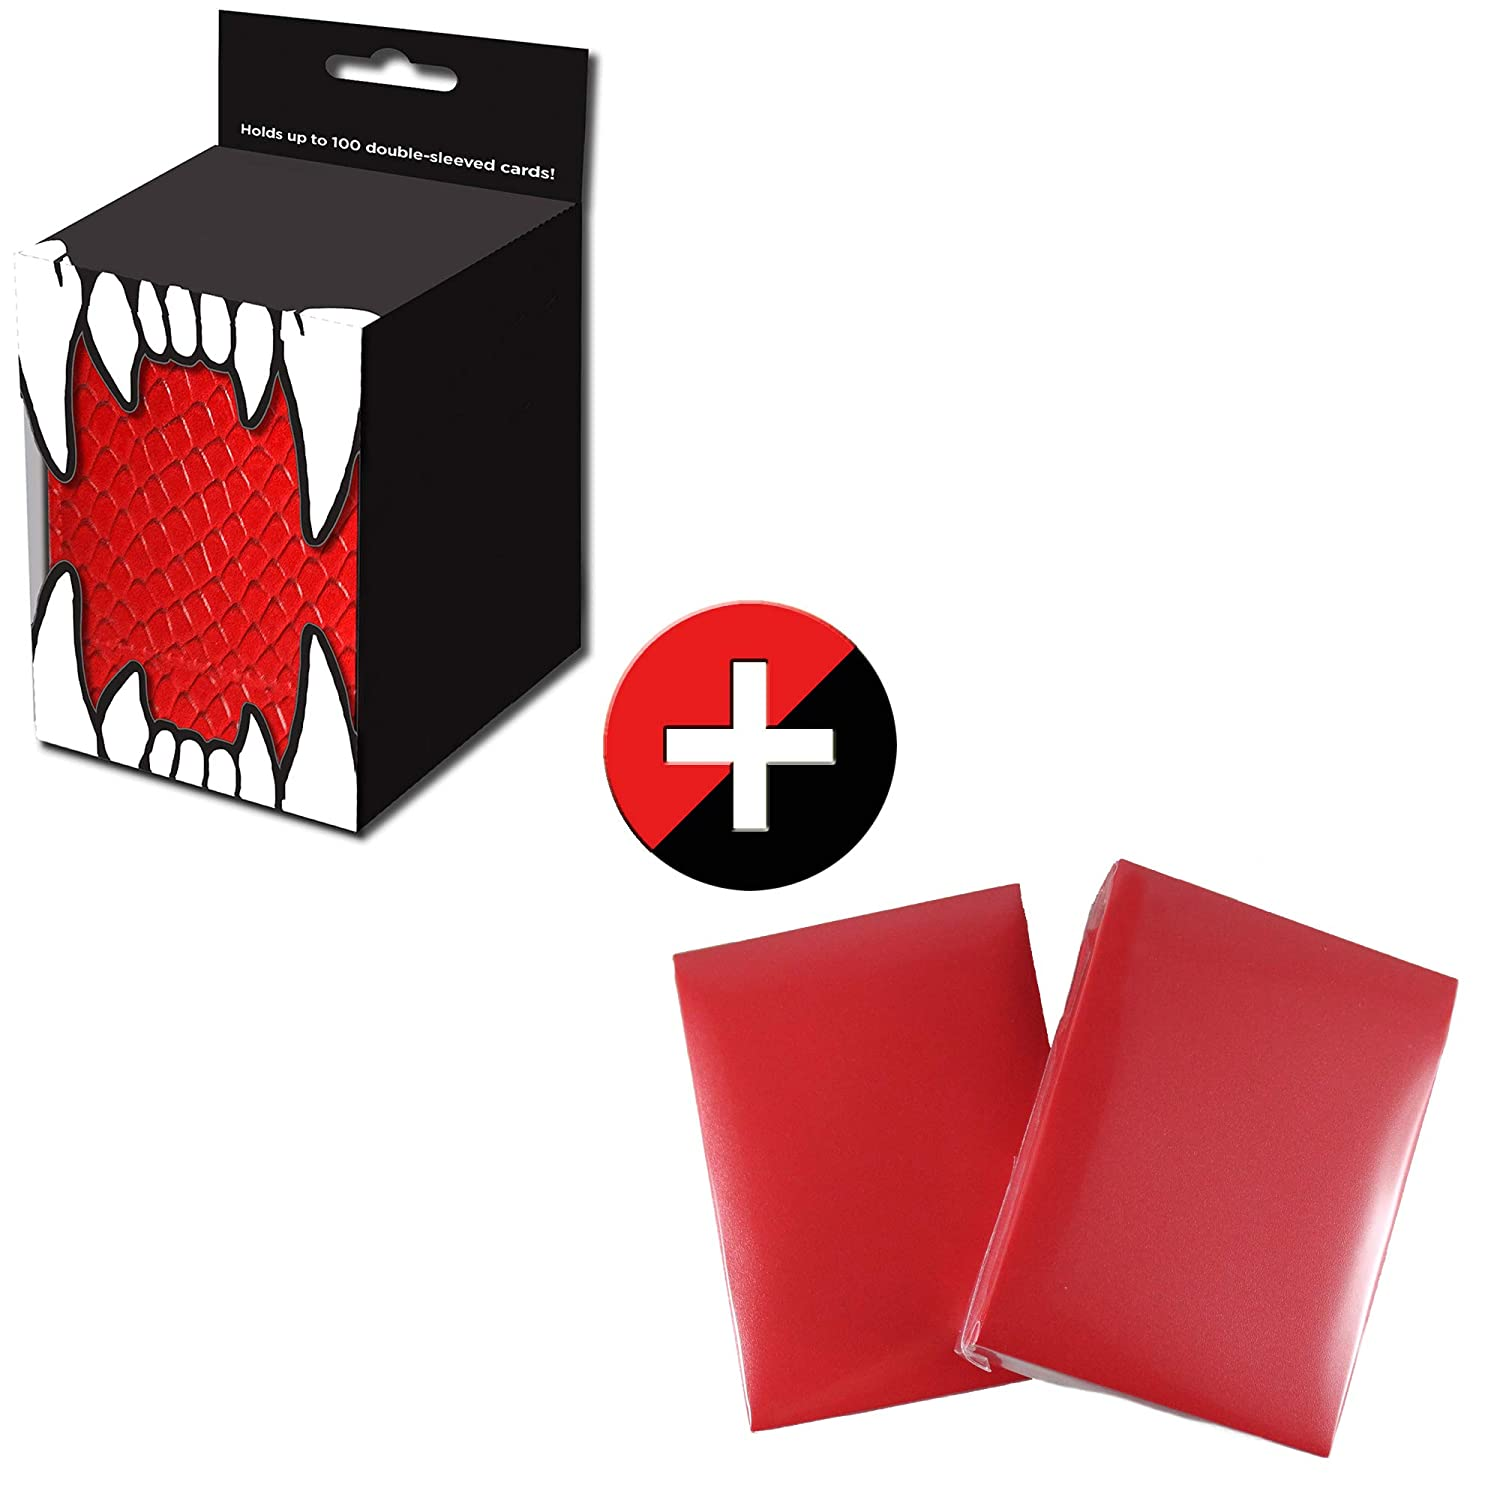 Totem World 100 Red Matte Card Sleeves with Red Dragonhide Deck Box for Standard MTG Yugioh Pokemon Cards Holds up to 100 Trading Cards